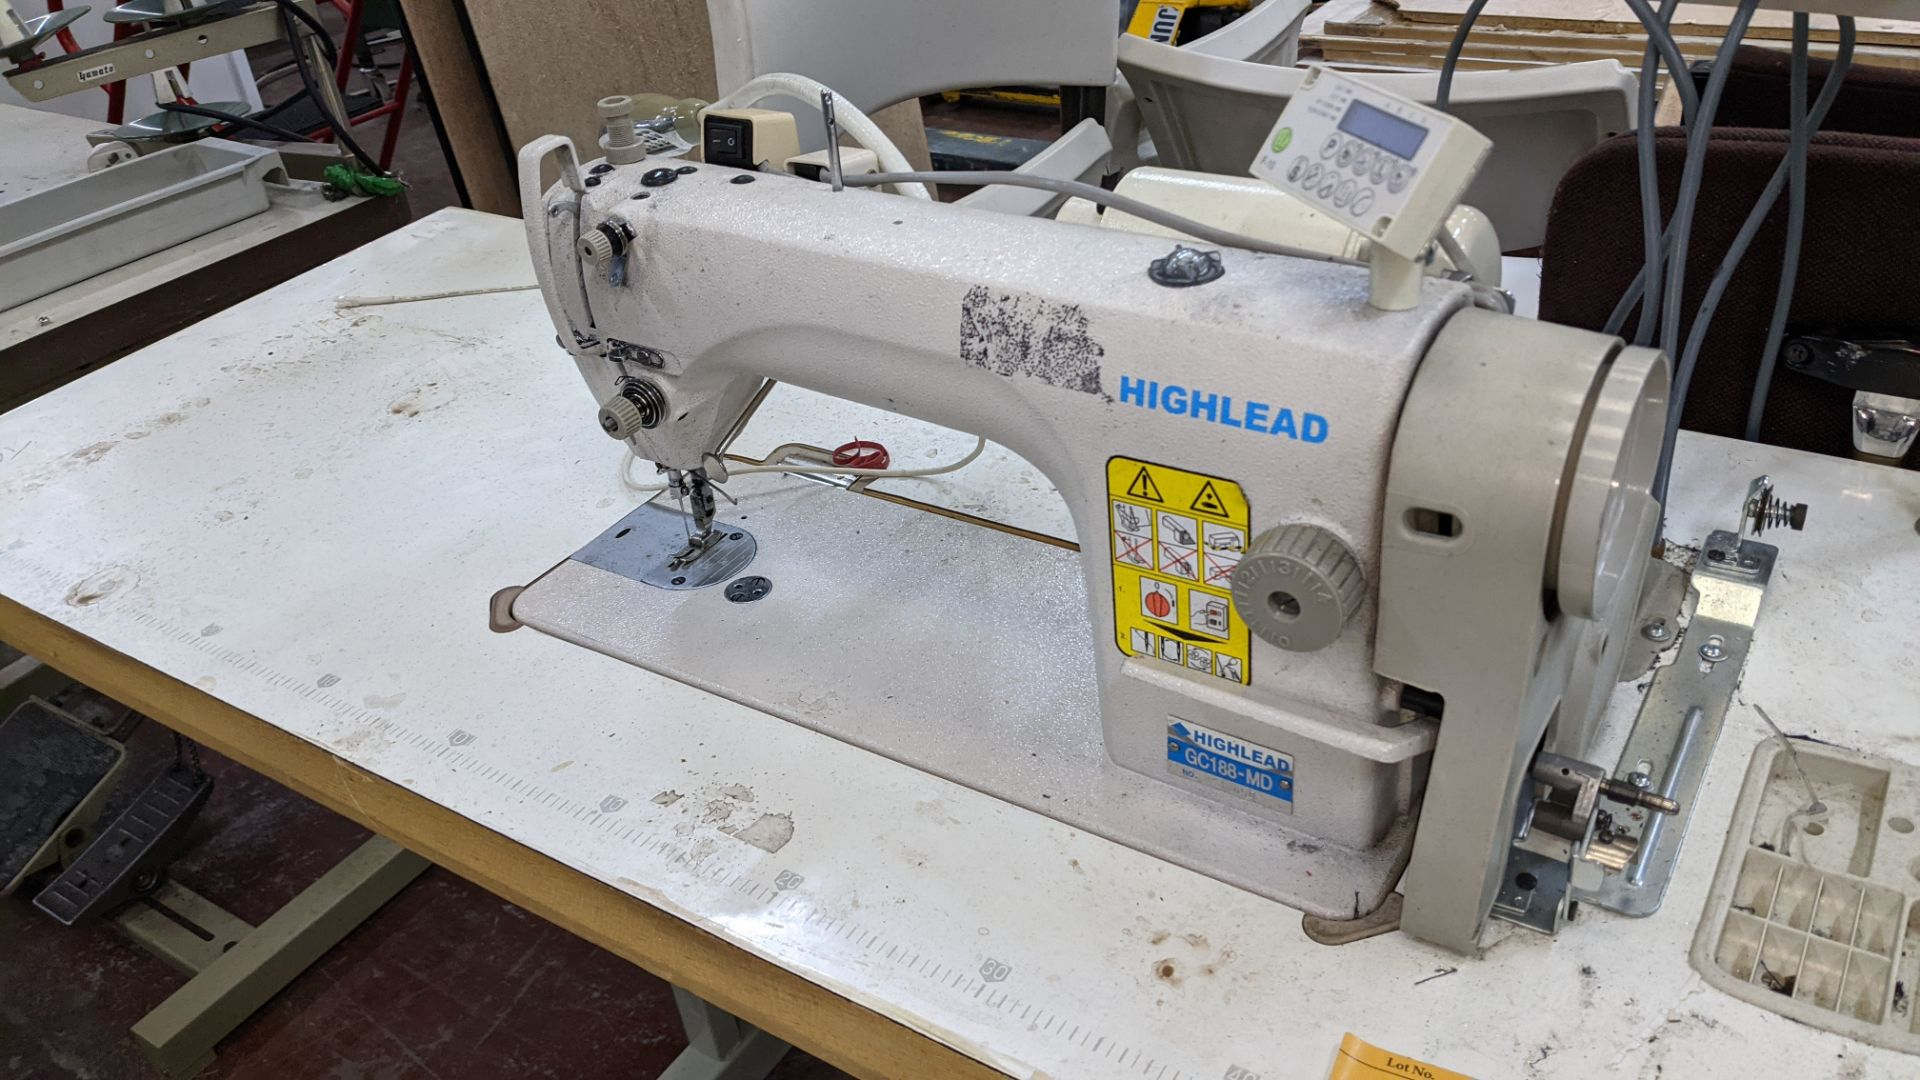 Highlead model GC188-MD sewing machine with model F-10 digital controller - Image 4 of 16